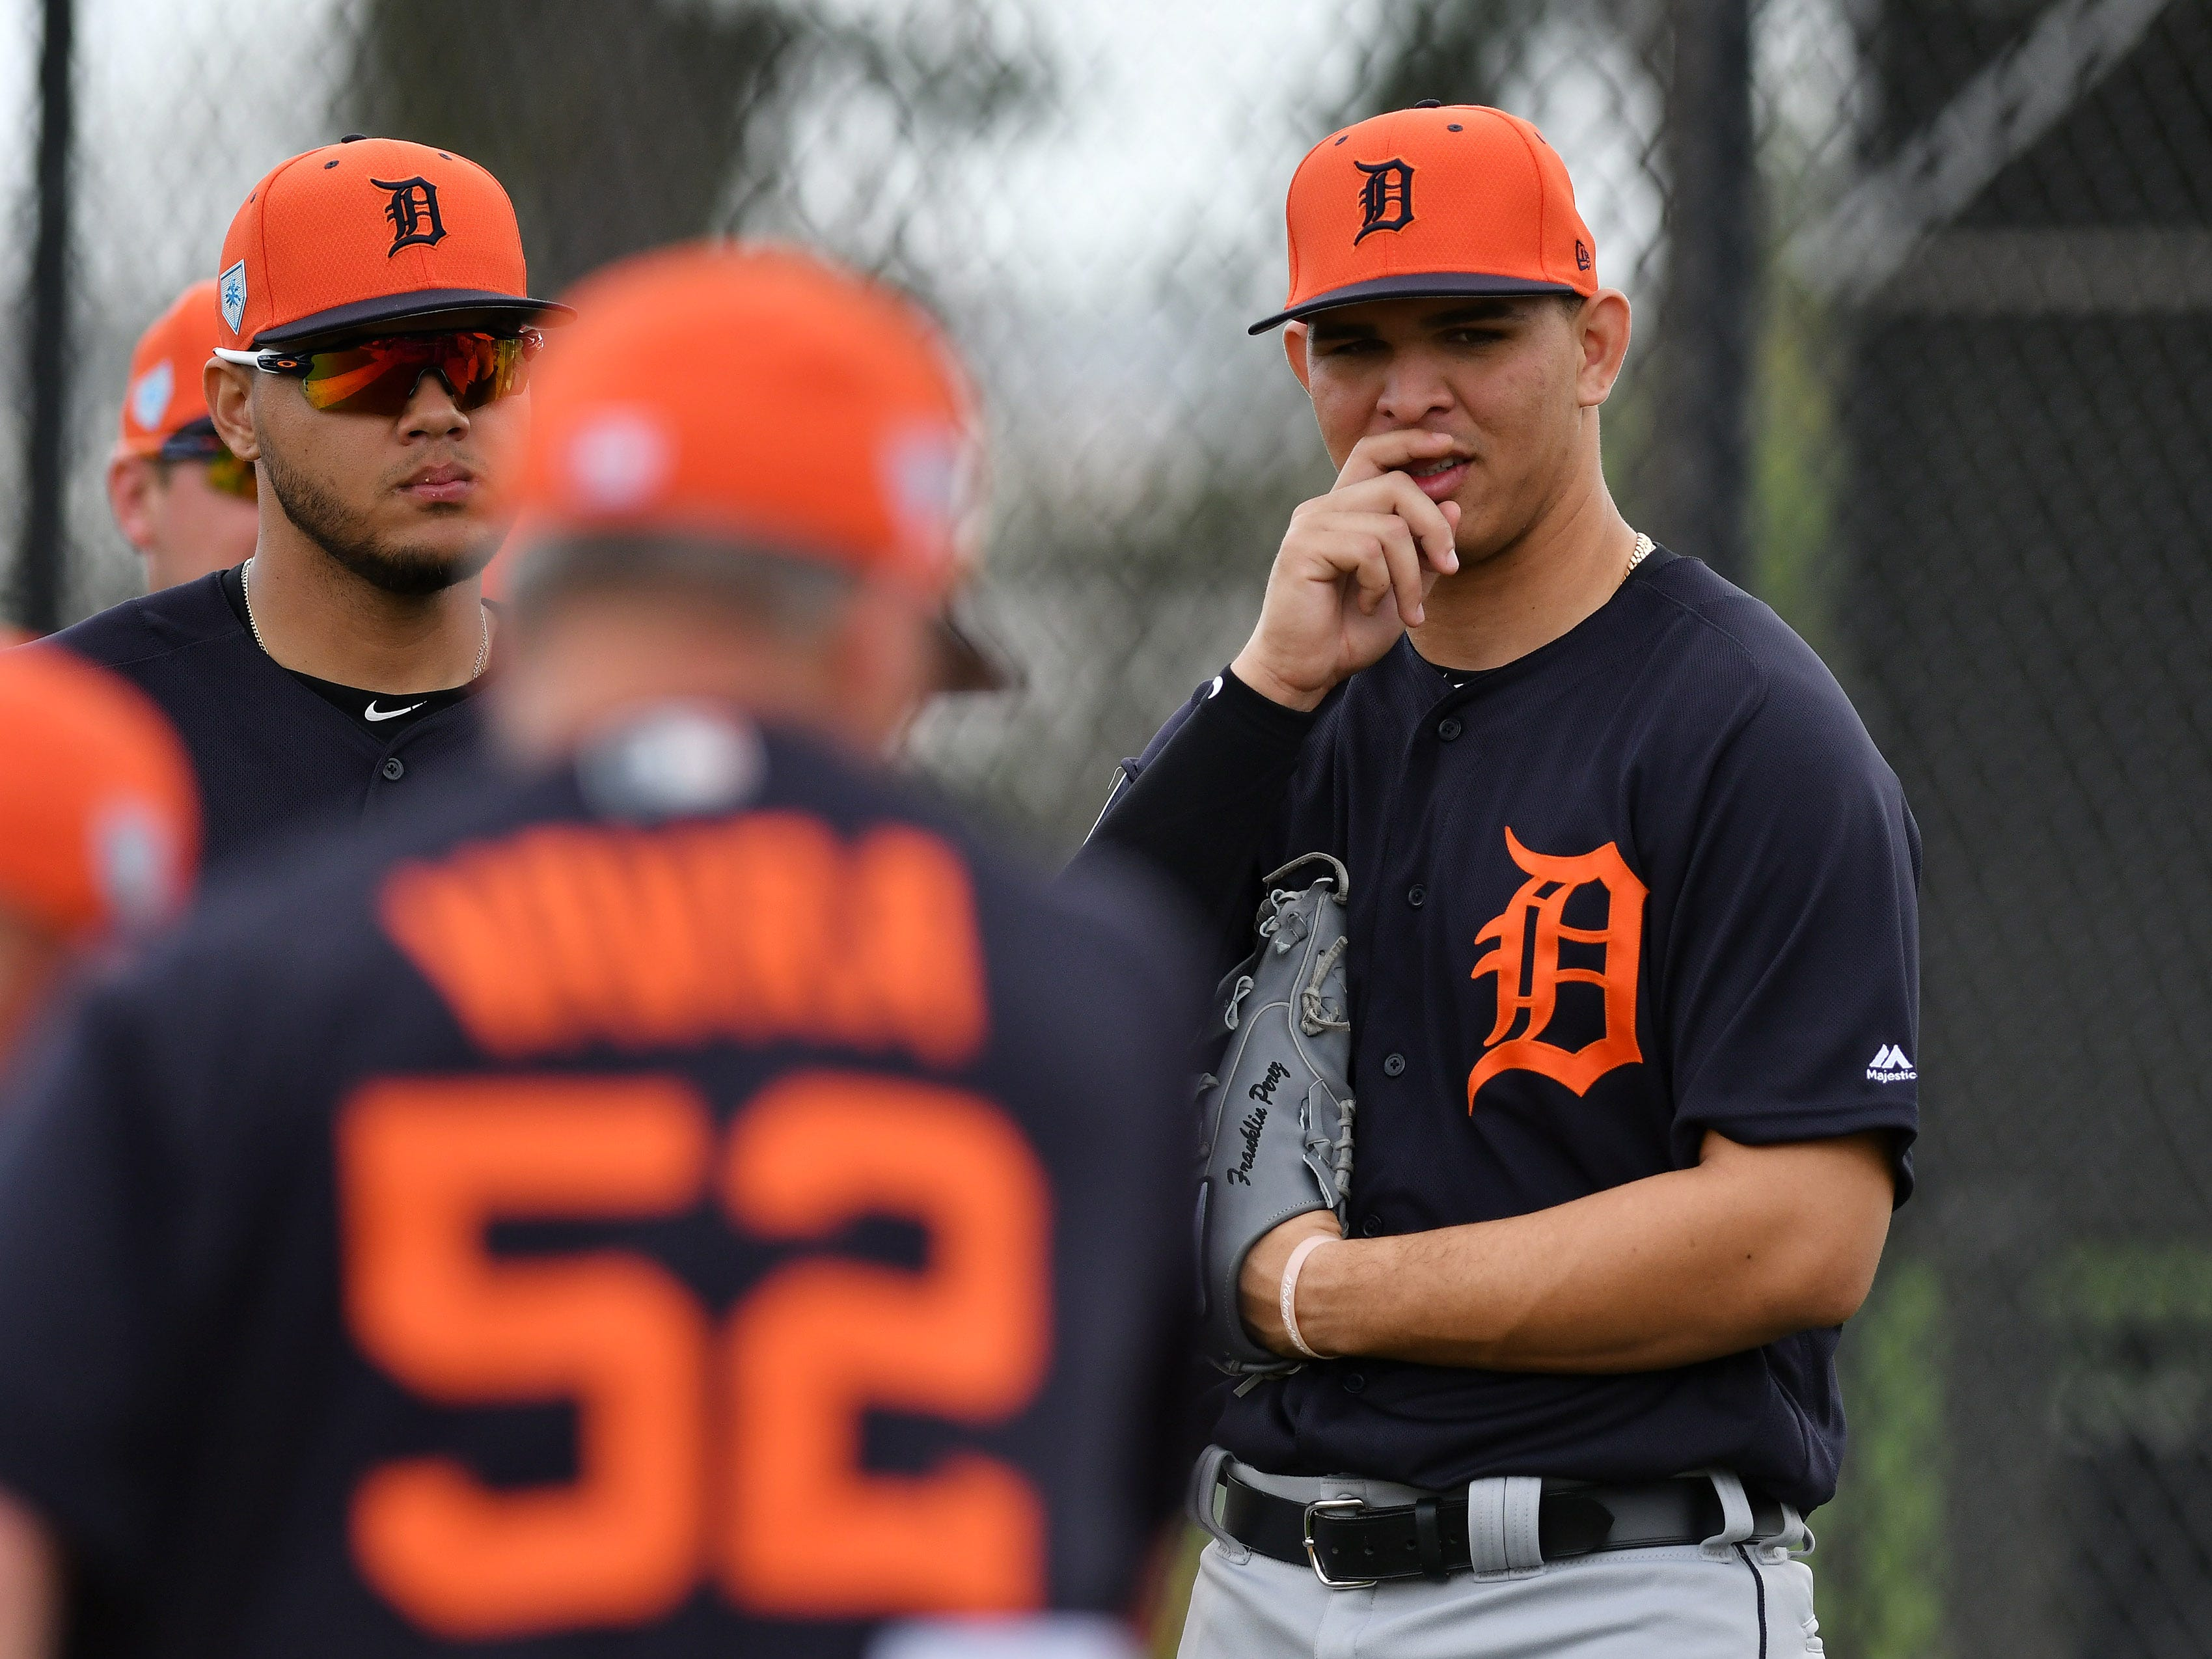 Tigers pitcher Franklin Perez, who has been out sick for a couple of days, listens to quality control coach Joe Vavra (52).